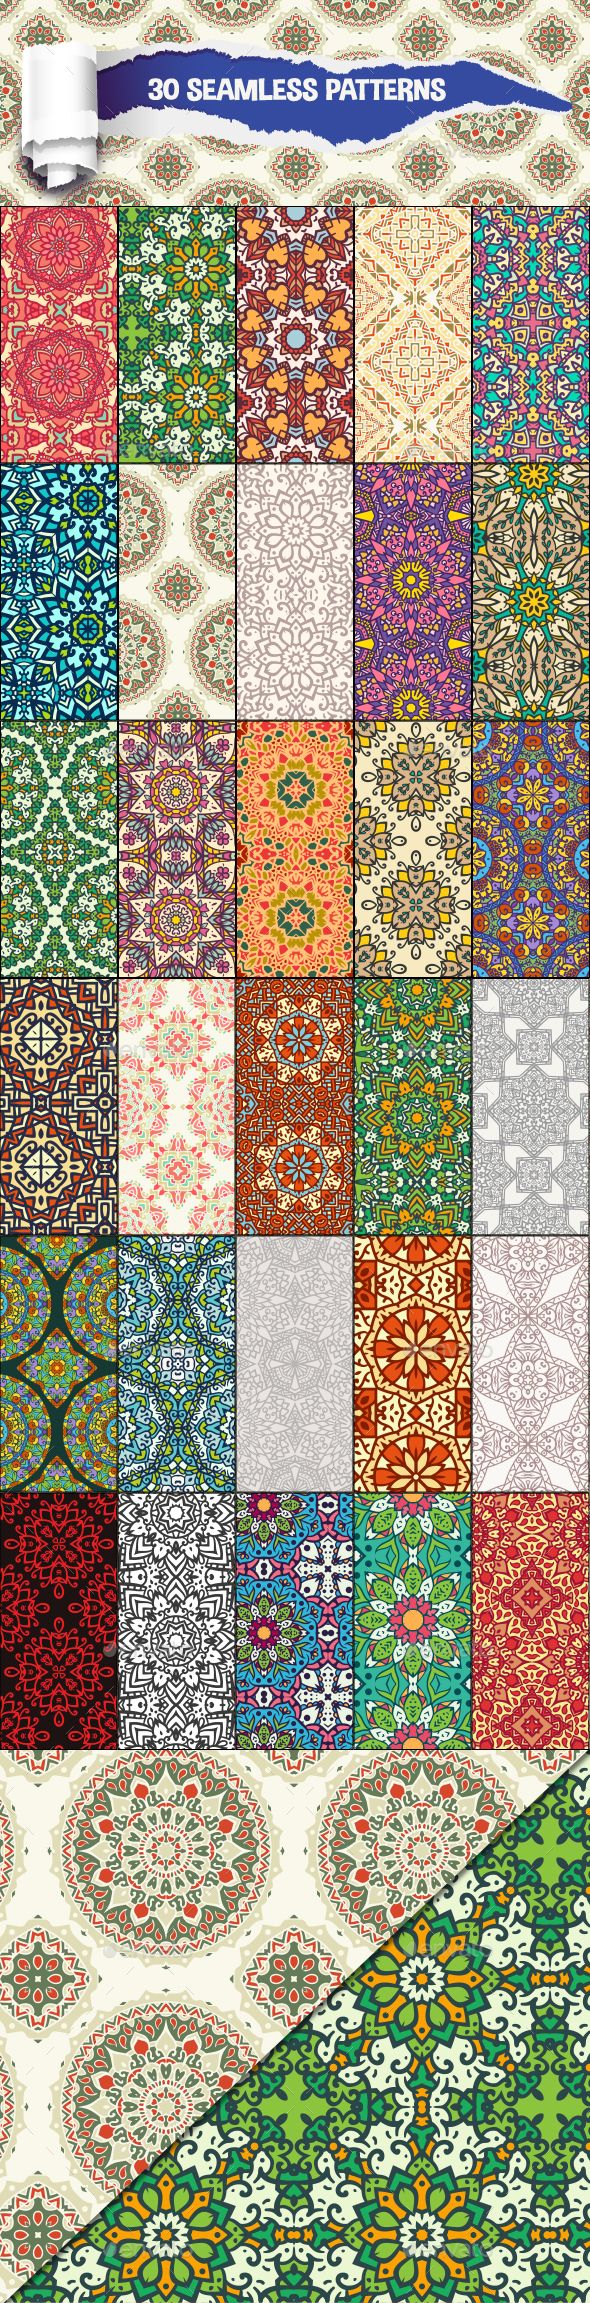 30 Floral Seamless Patterns - Patterns Decorative